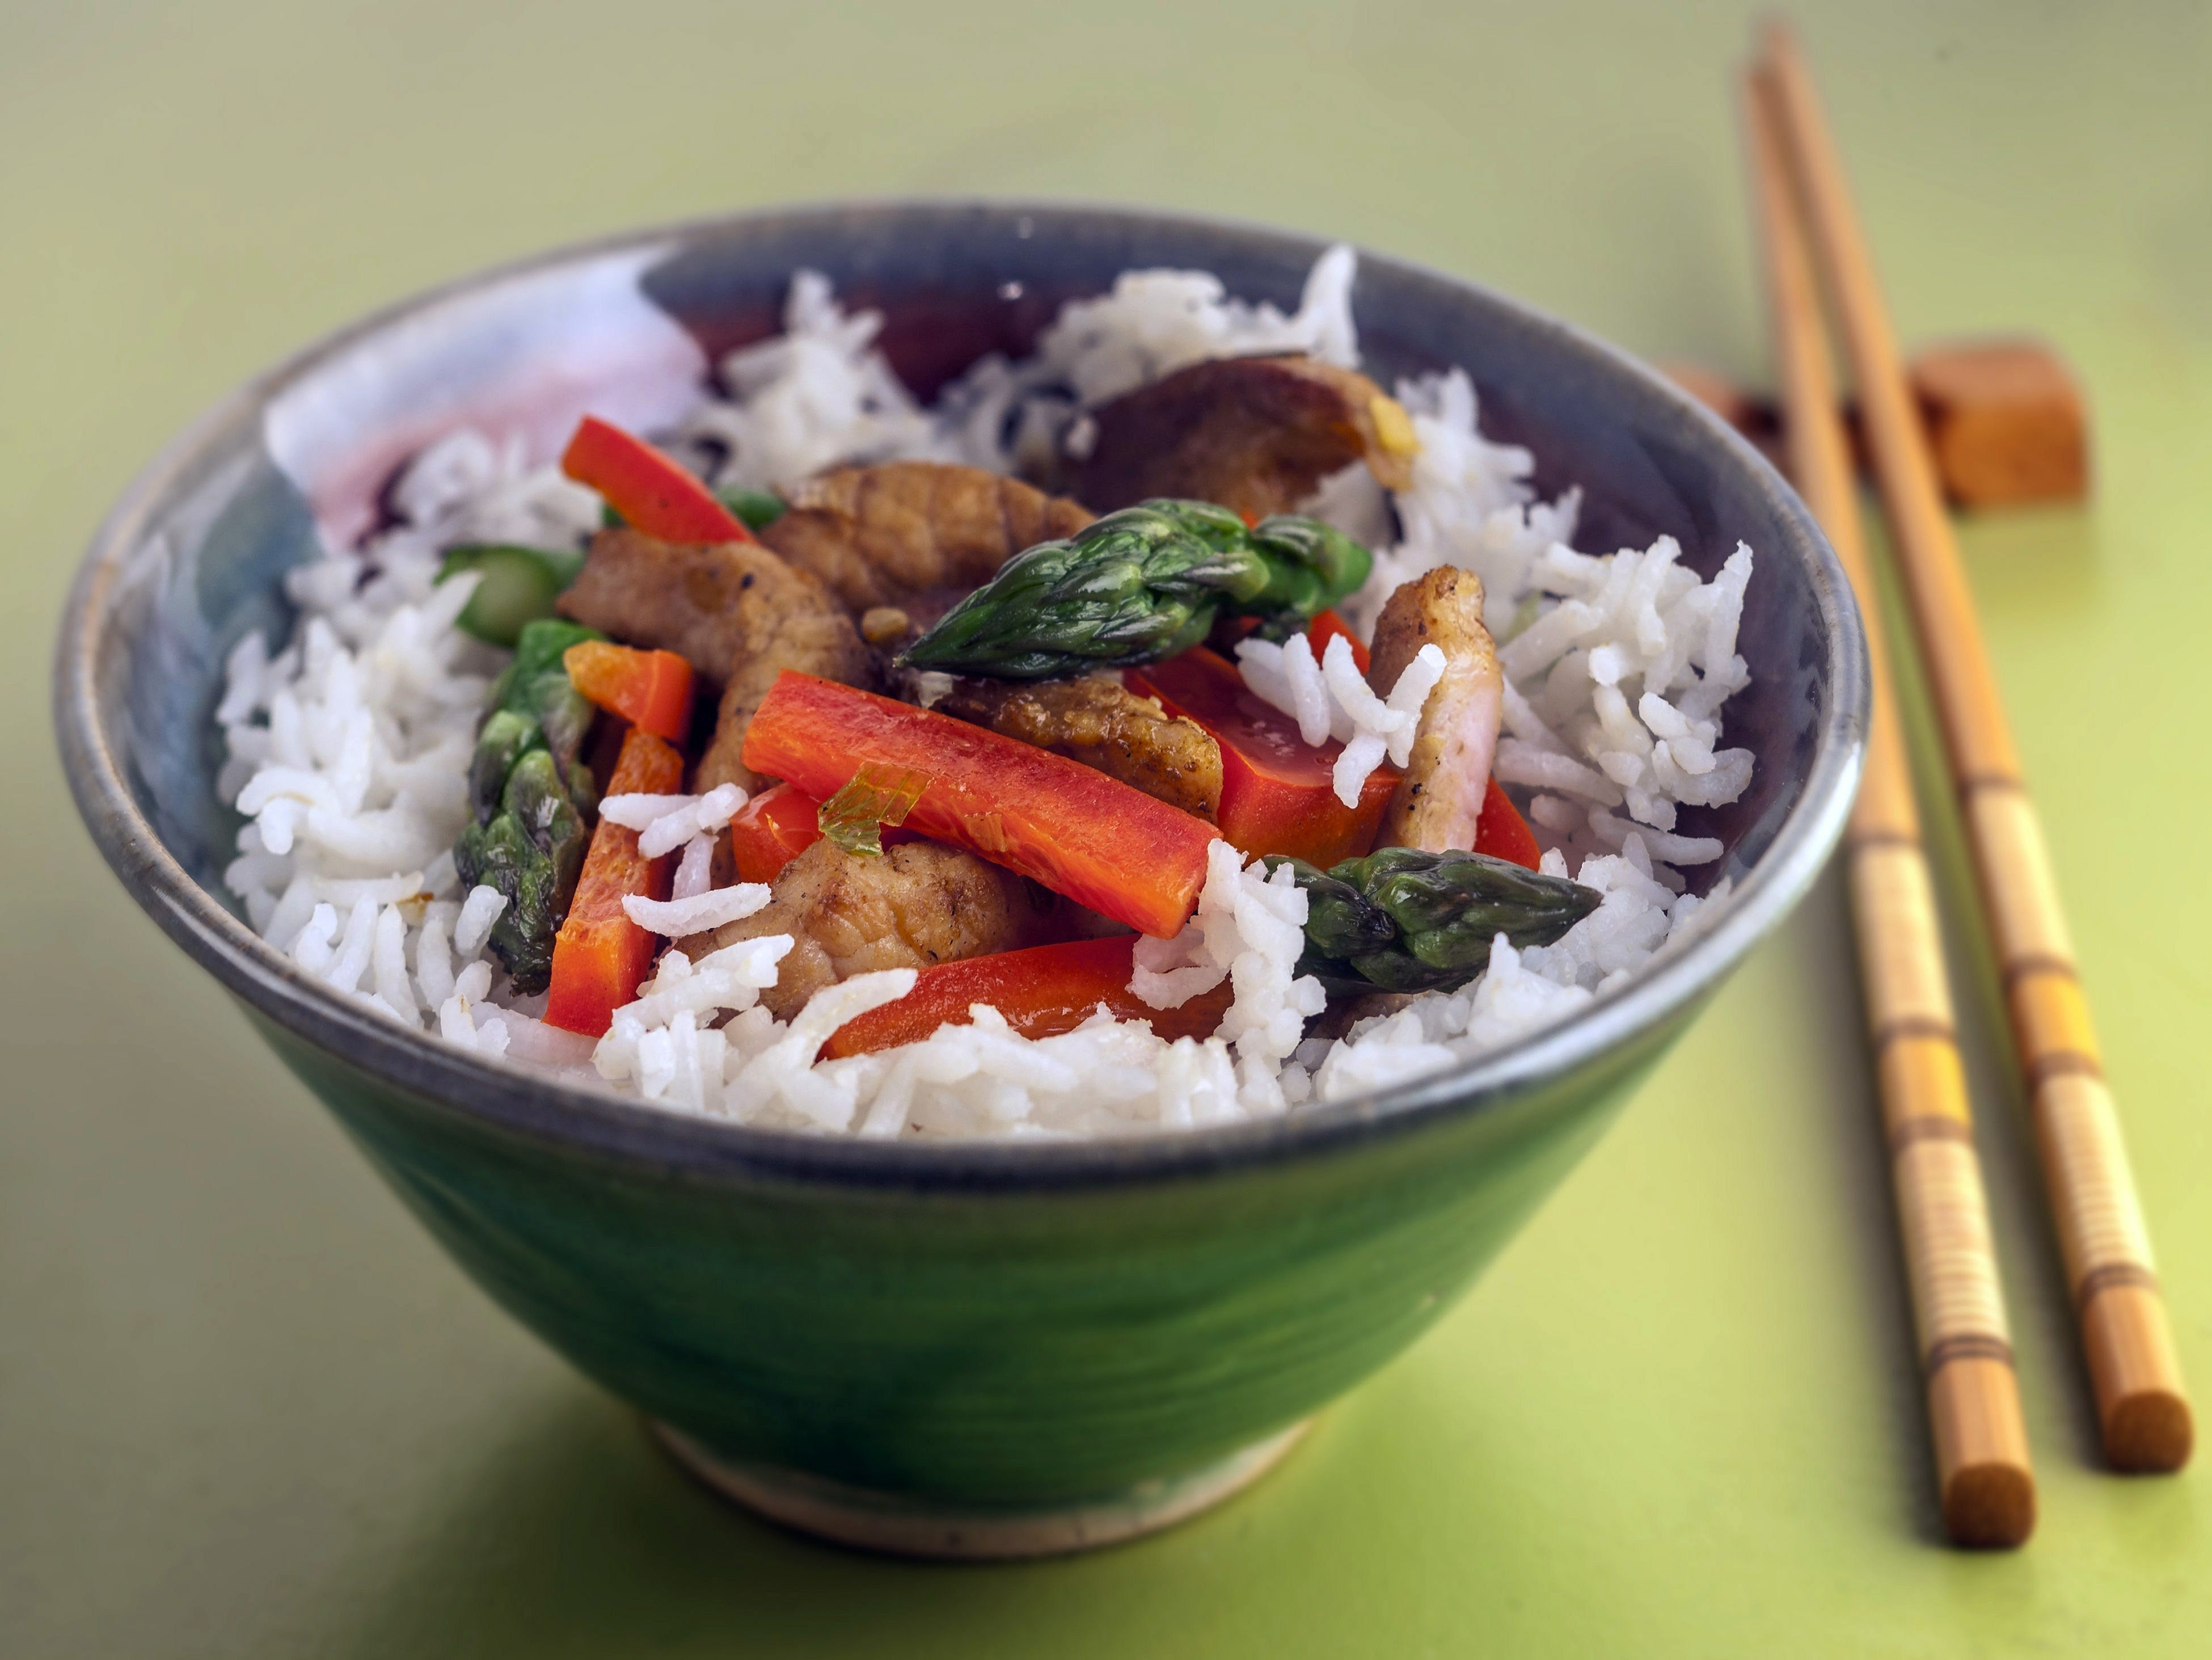 Asparagus is the star of this dish of asparagus and beef stir-fry.